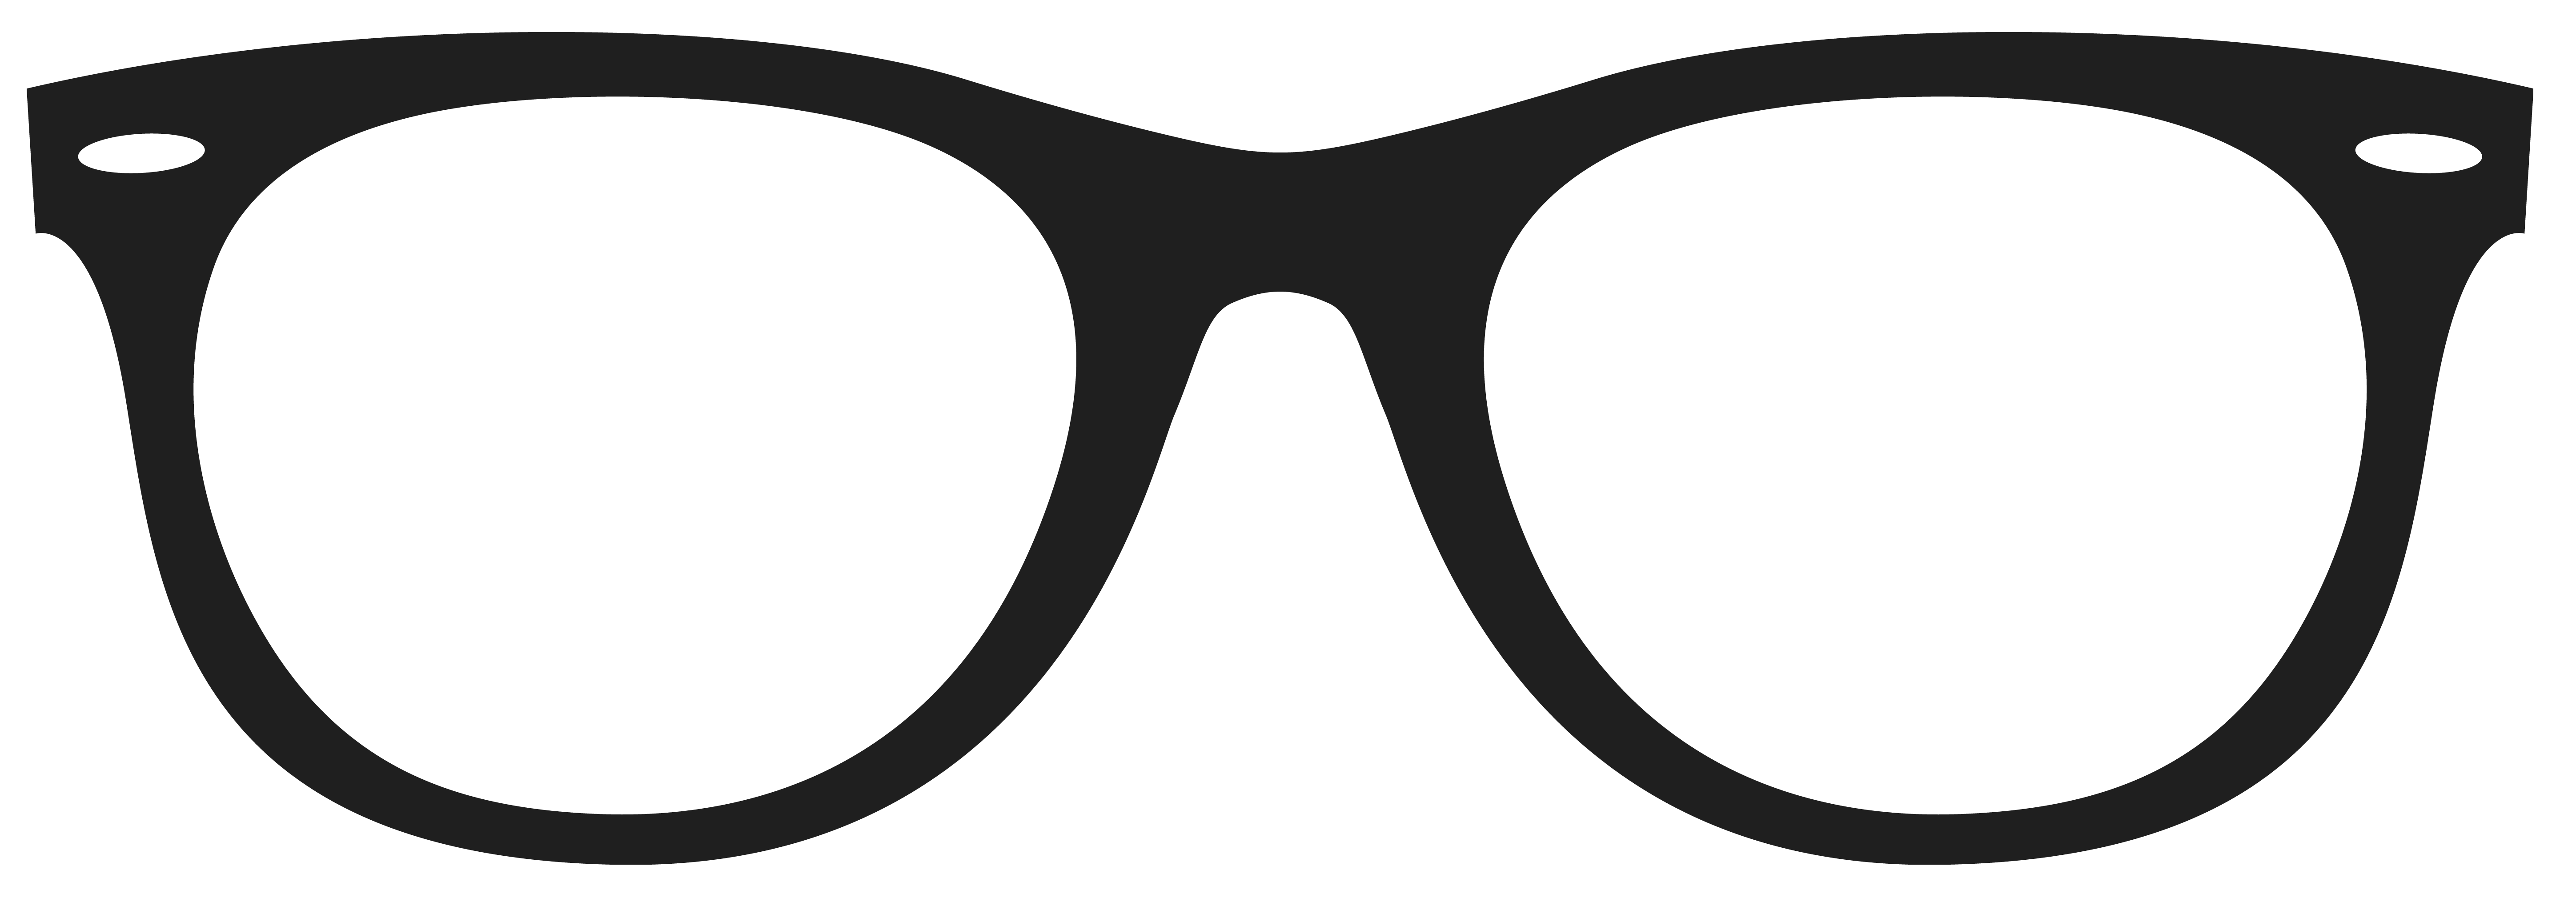 Glasses Png Hd PNG Image